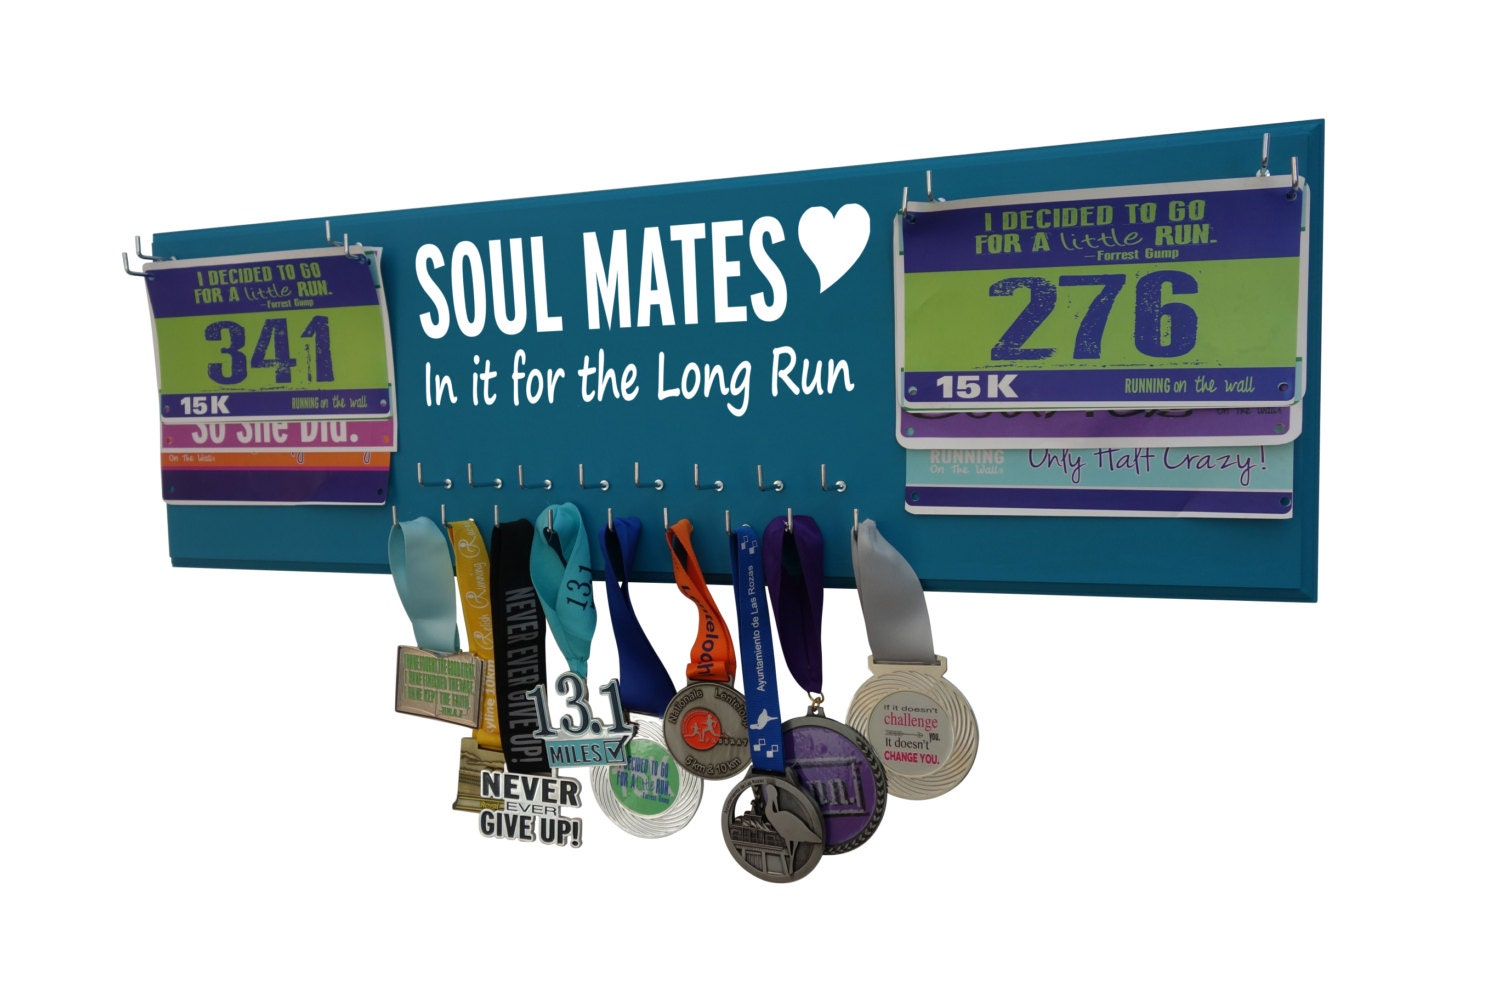 Wedding Gifts For Runners : Wedding running wedding gift race bib holder Sweating for